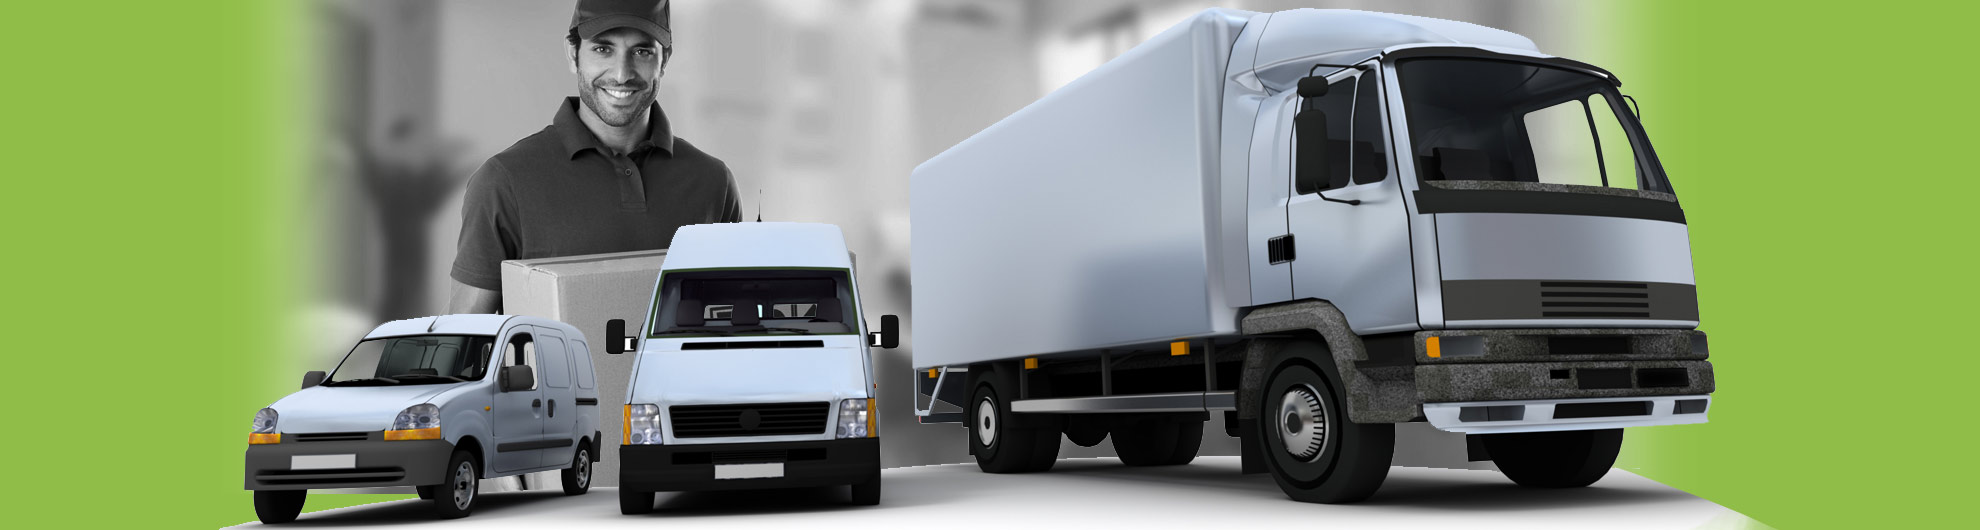 Phuthaditjhaba  International Movers - Shipping Companies